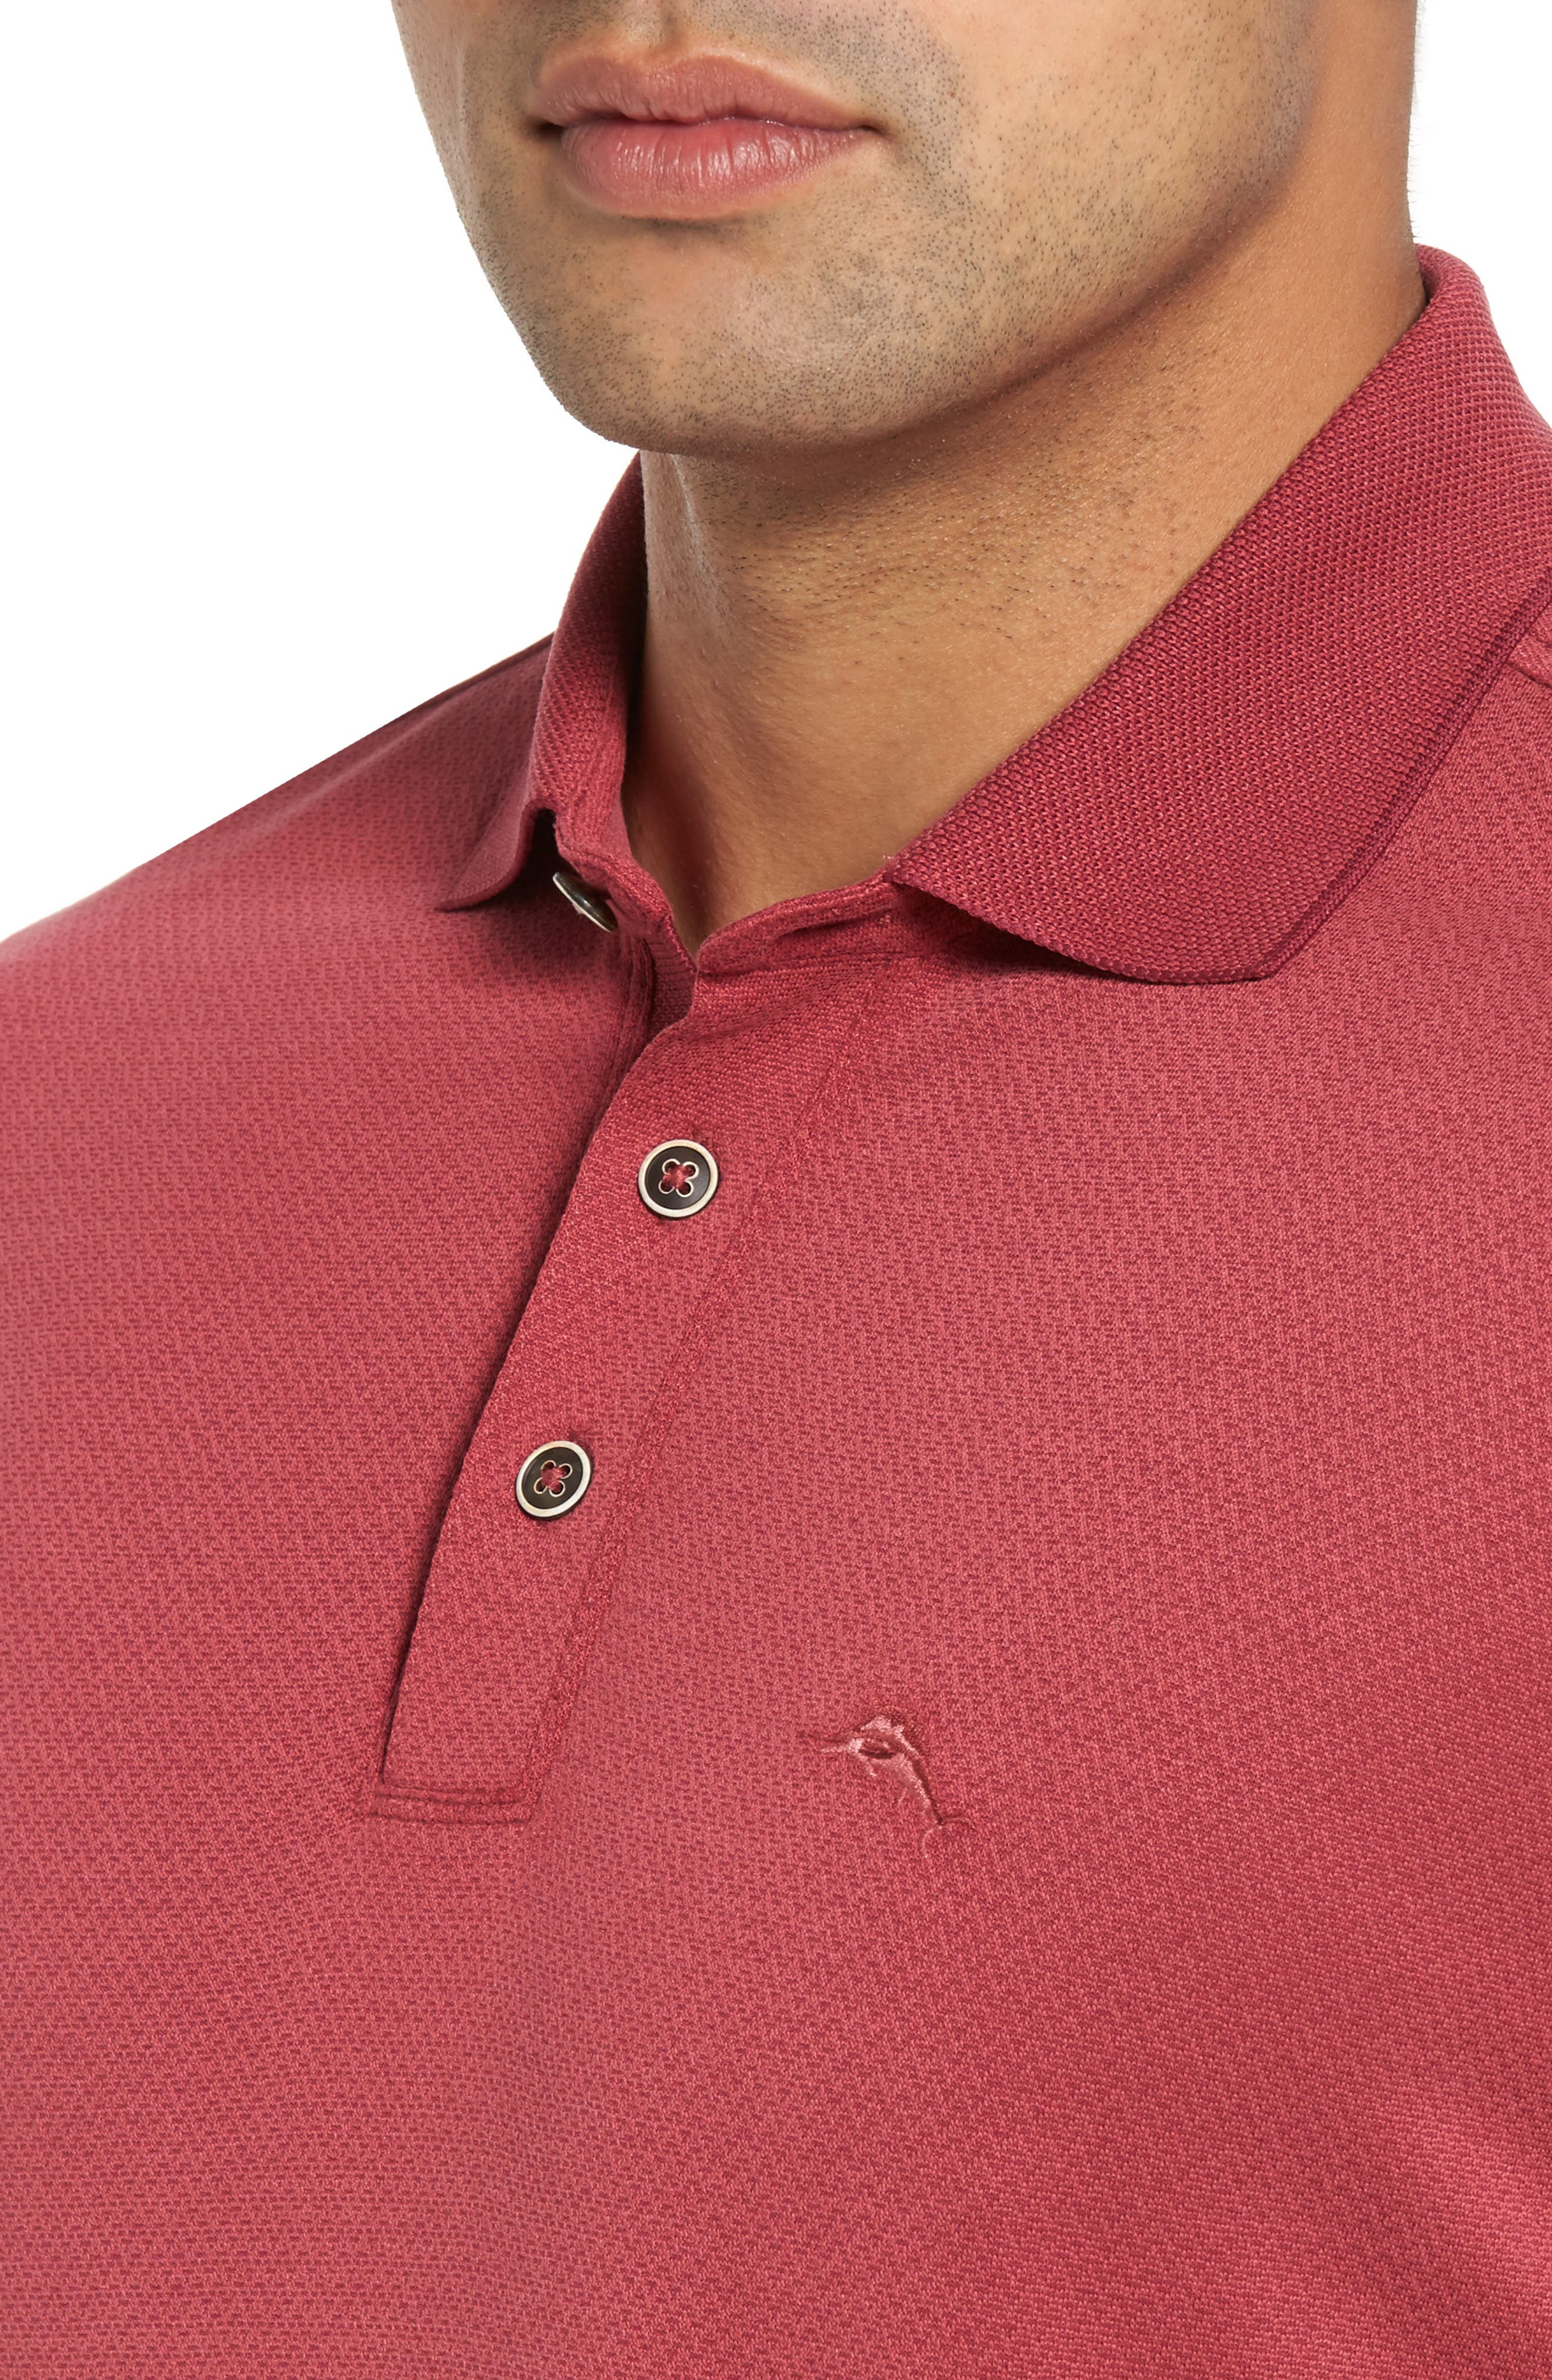 Ocean View Short Sleeve Jacquard Polo,                             Alternate thumbnail 4, color,                             Beet Red